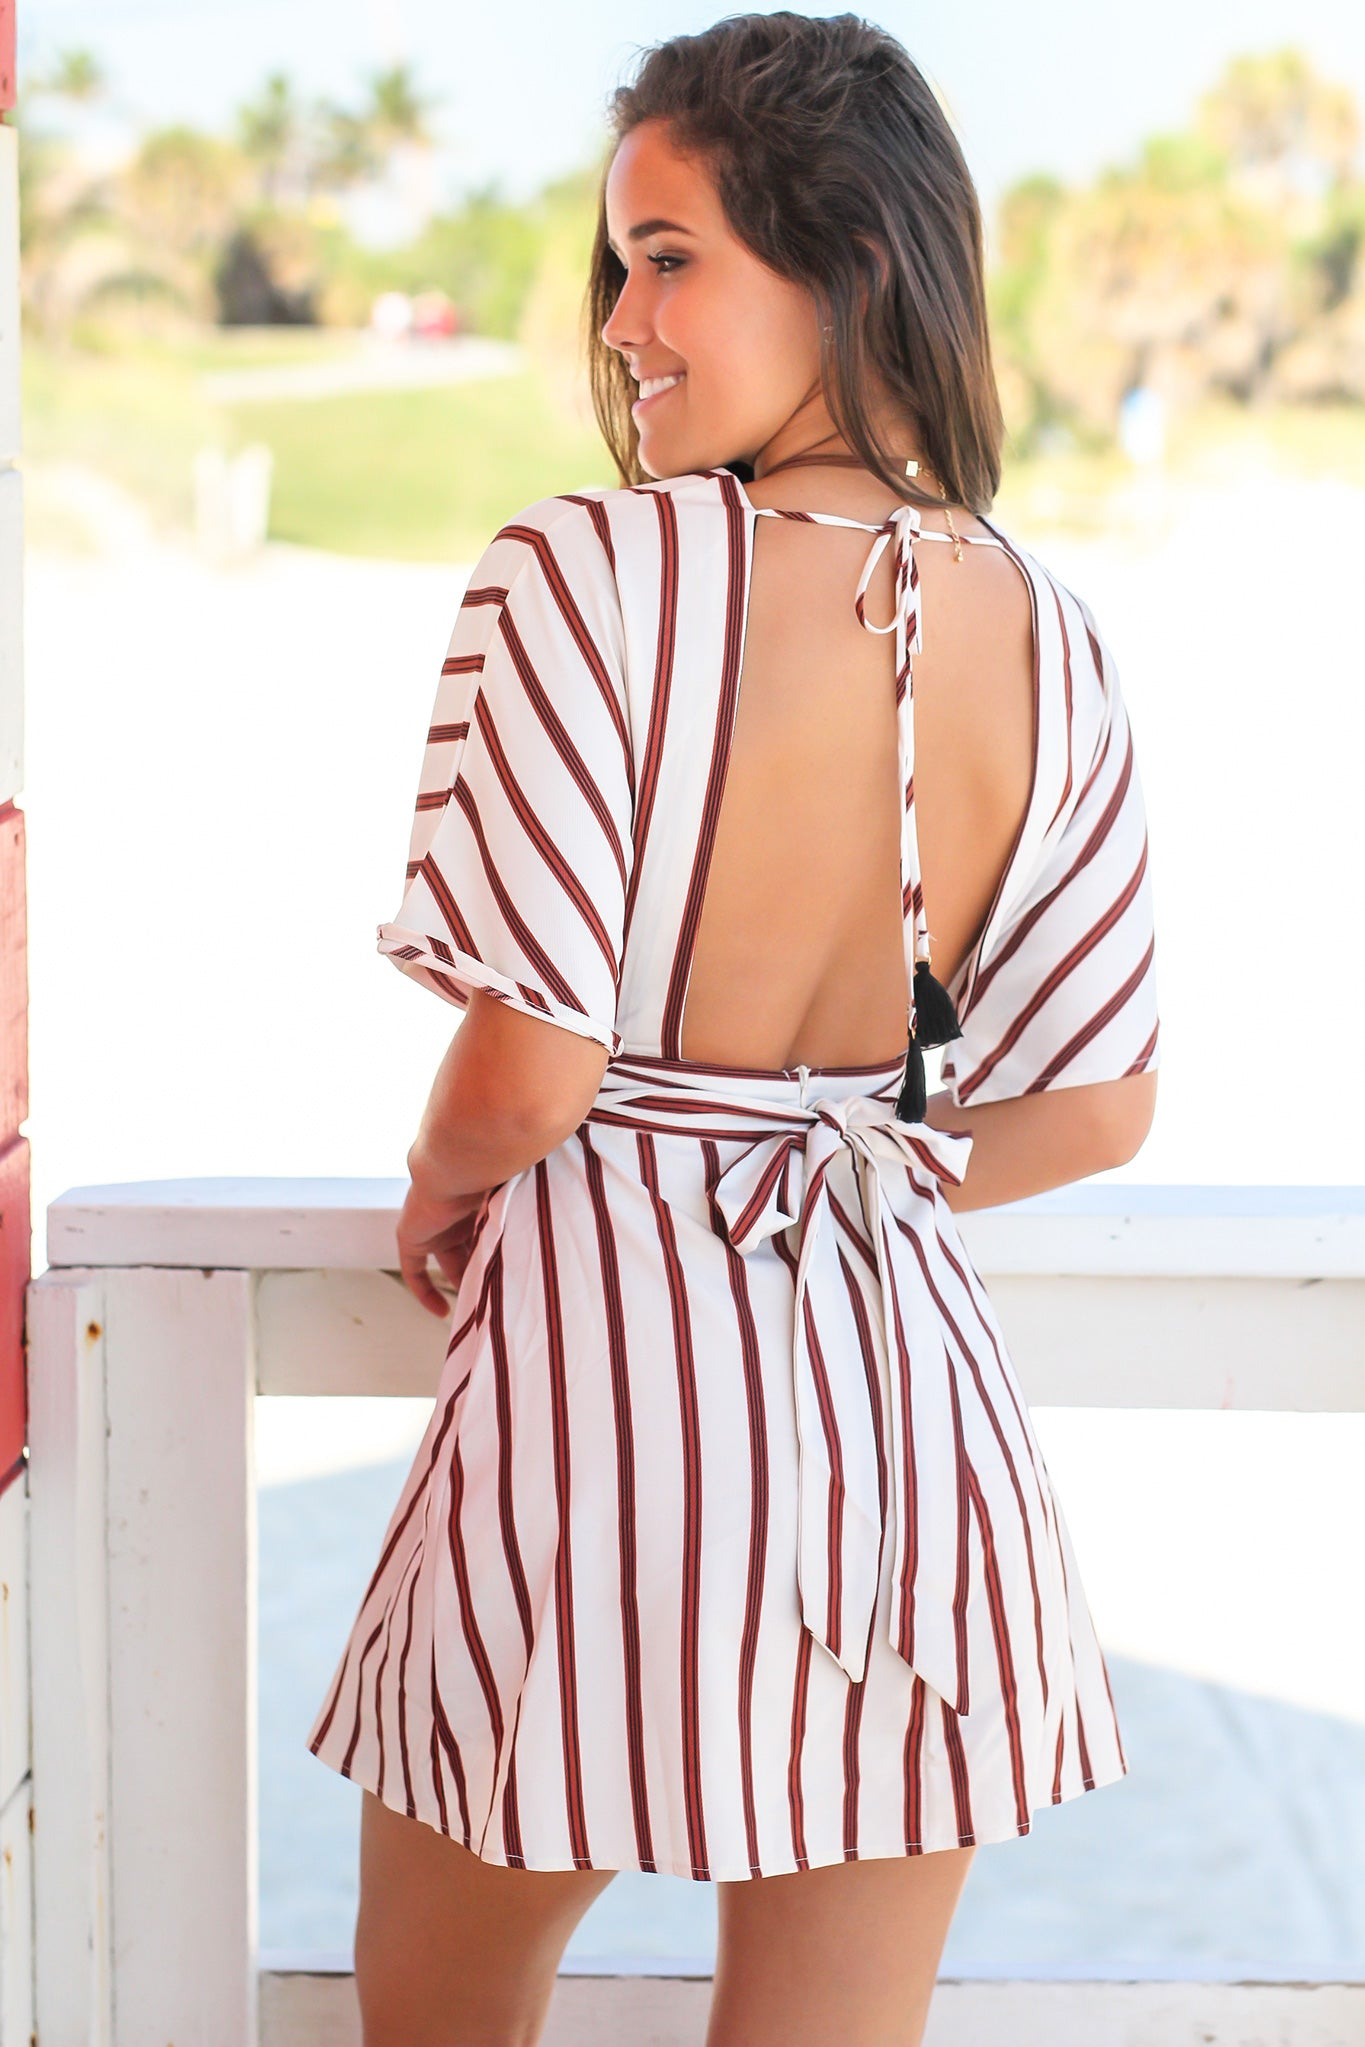 Ivory Striped Short Dress with Buttons